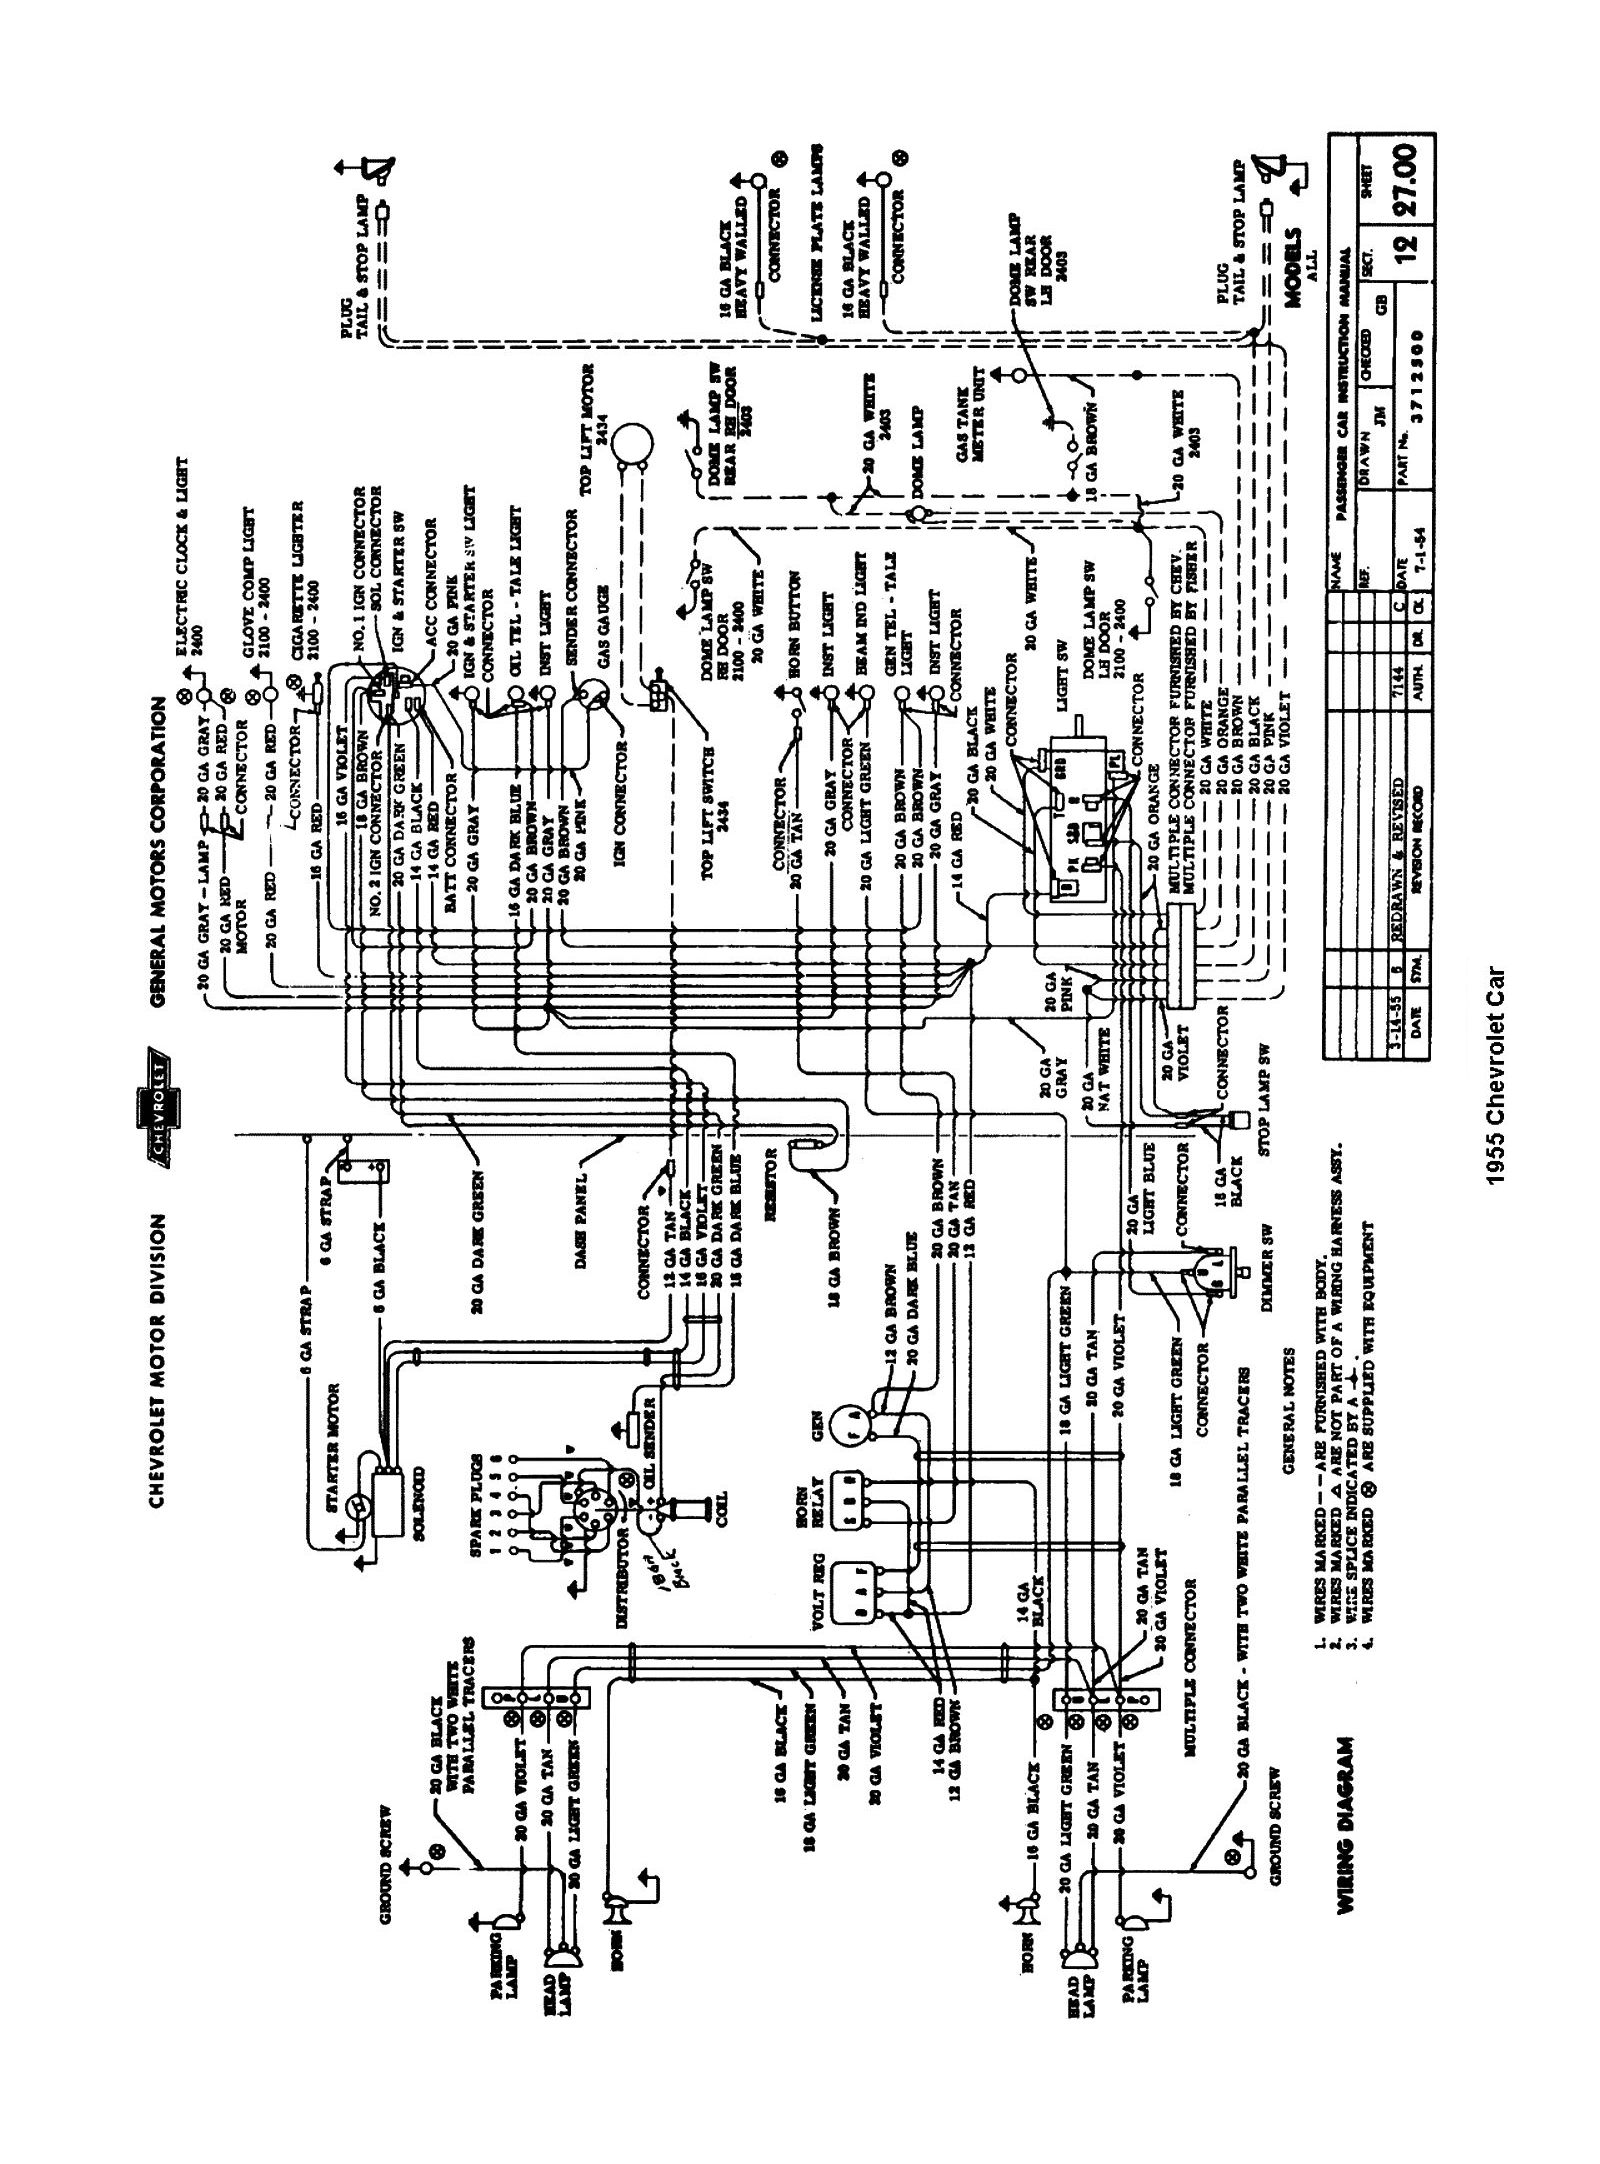 55car1 chevy wiring diagrams 1955 chevy steering column wiring diagram at honlapkeszites.co